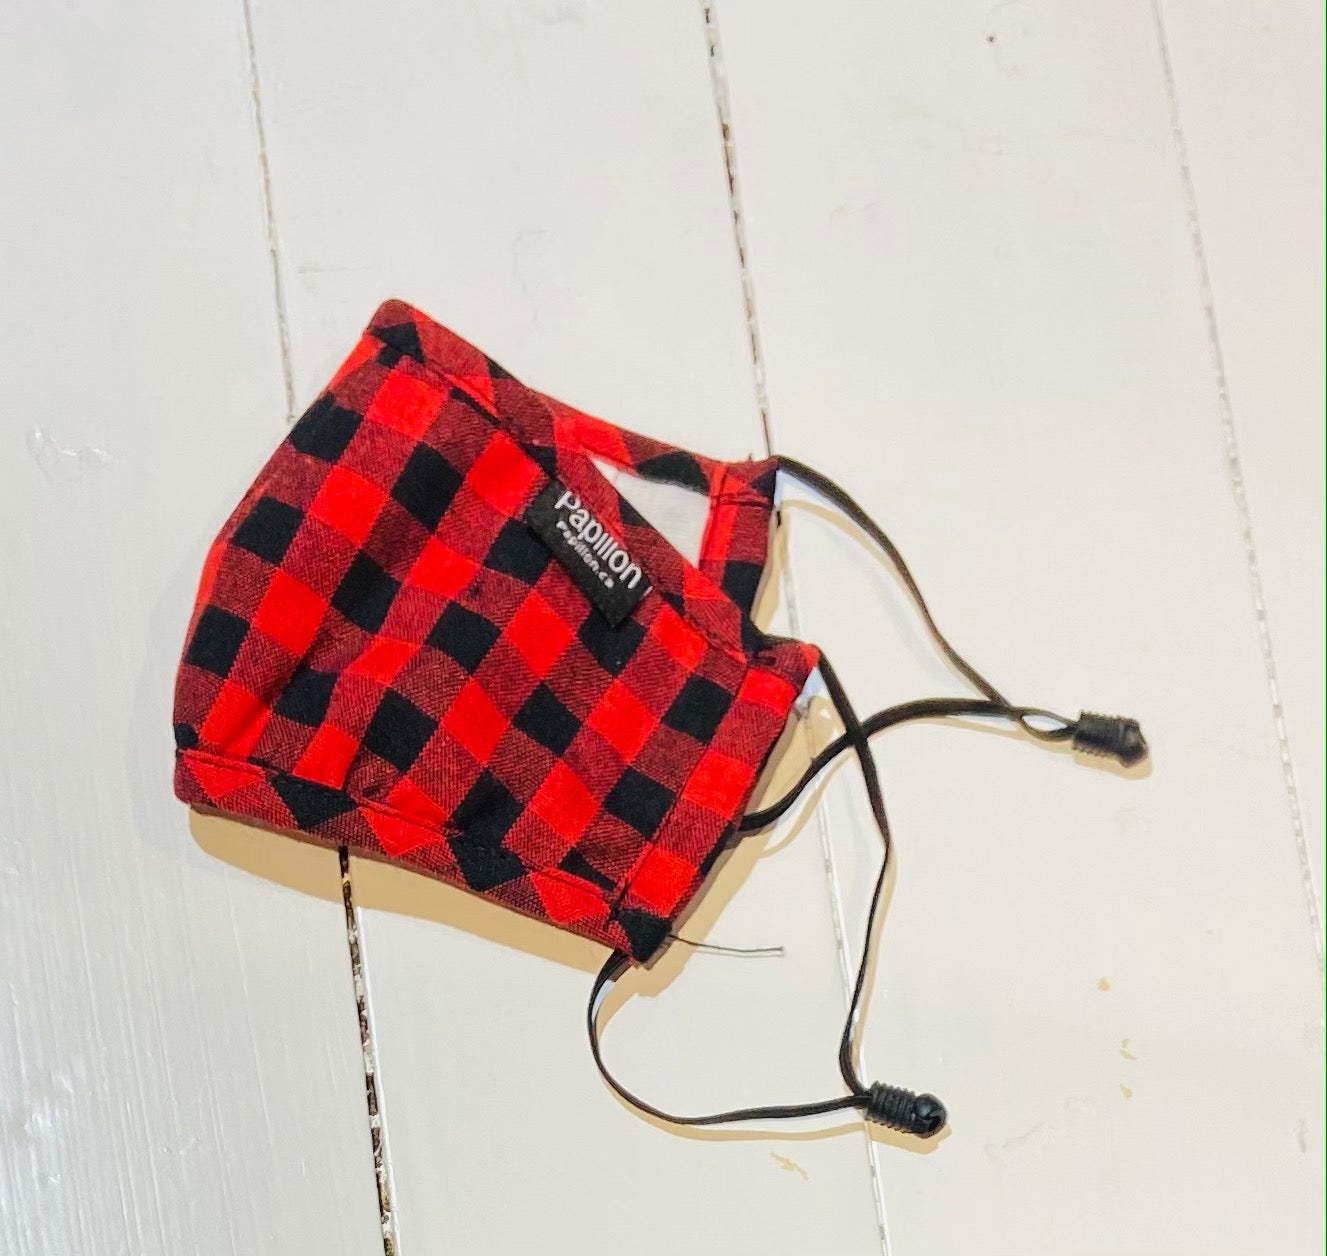 Youth Plaid Mask with Adjustable Ear Pieces